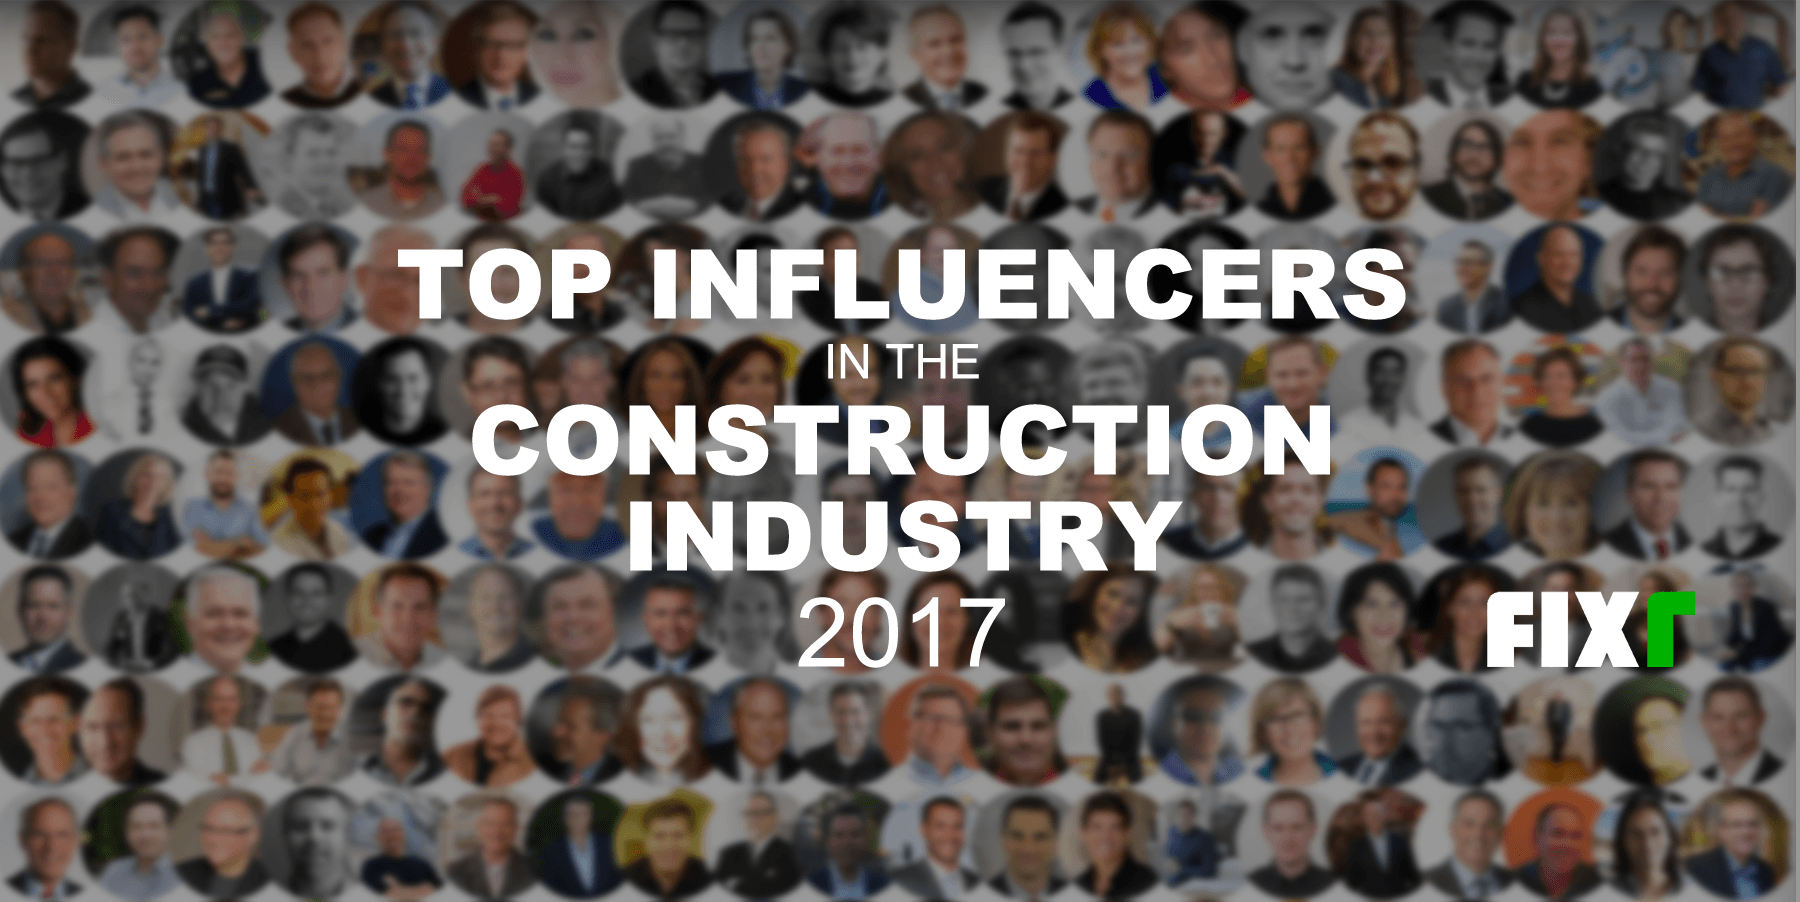 Top 200 Influencers in the Construction Industry in 2017